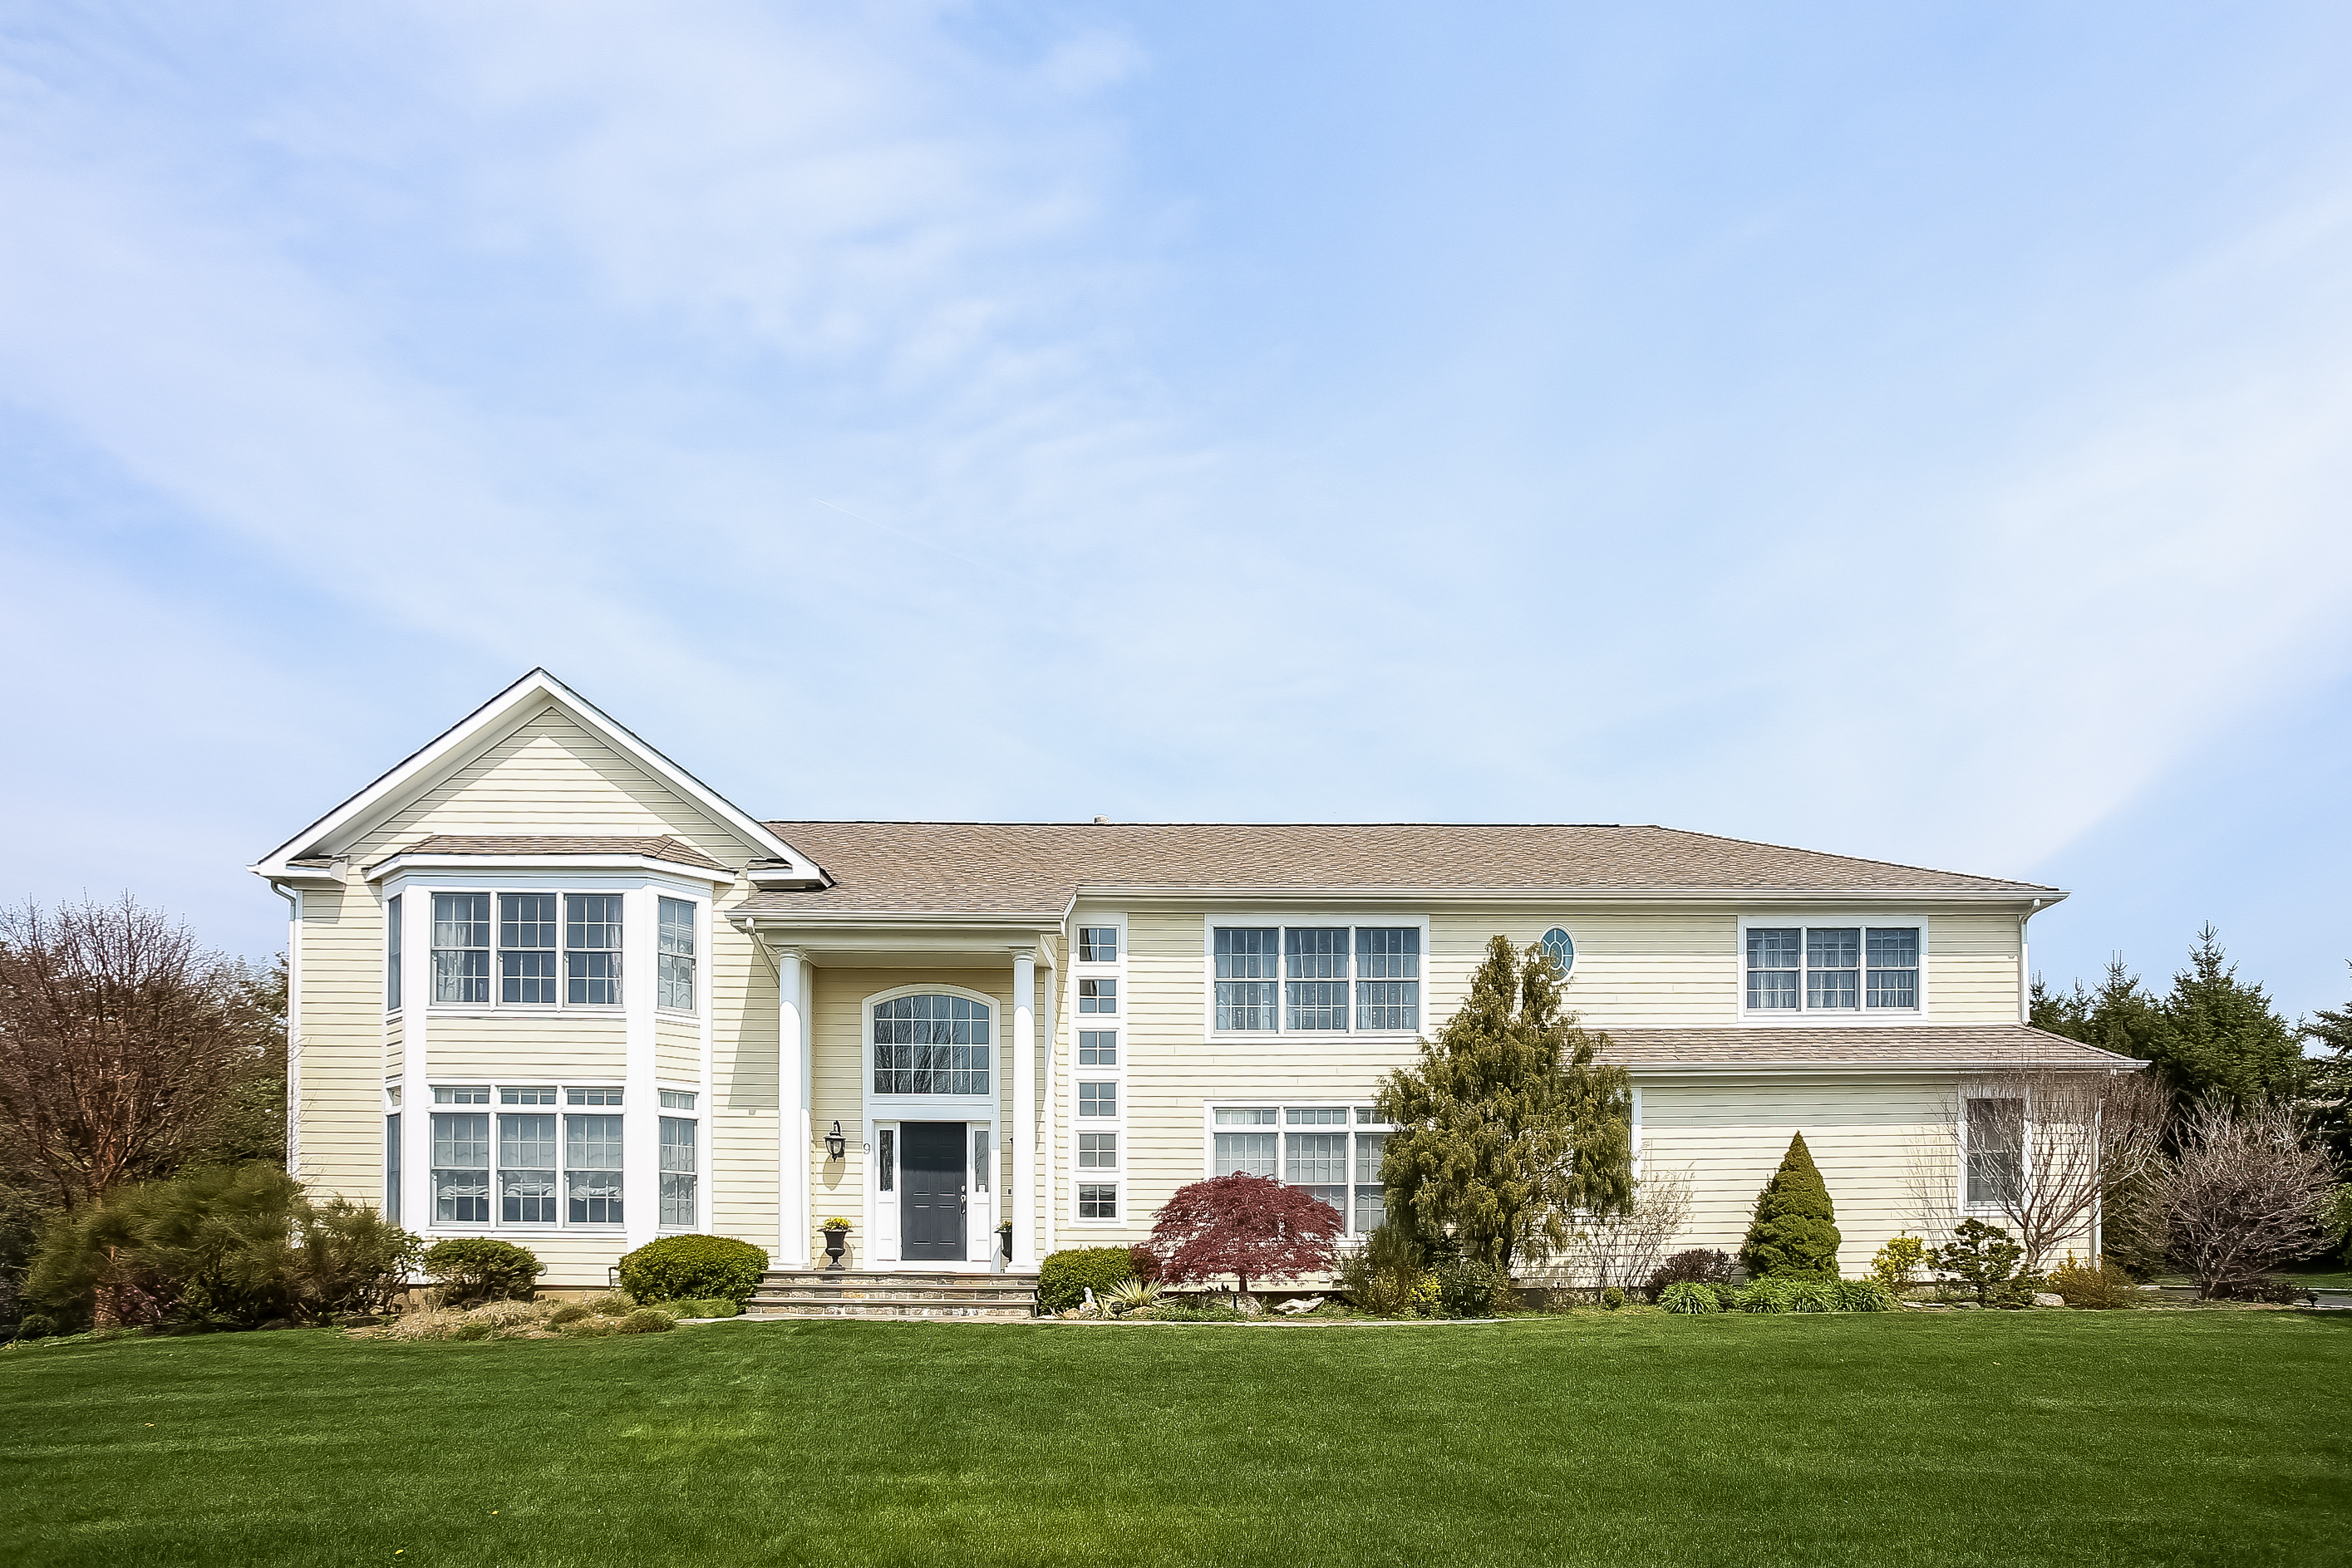 Single Family Home for Sale at 9 Red Roof Drive Rye Brook, New York, 10573 United States